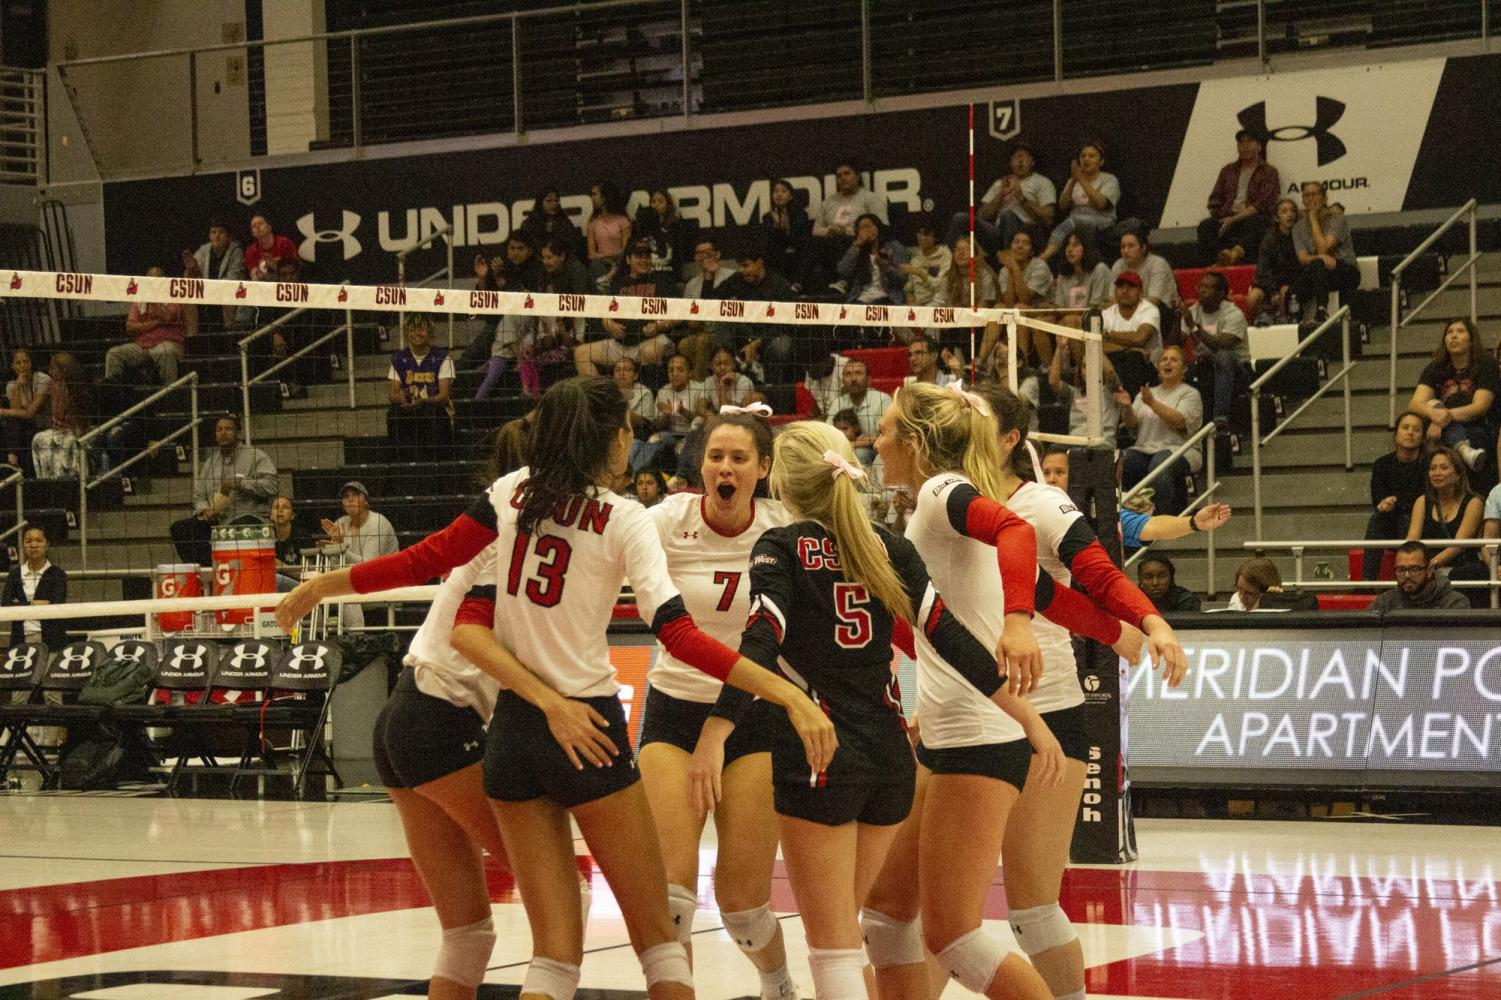 The women's volleyball team celebrates after a point against UC Irvine on Oct. 18. The team won three of the five sets to secure their second home victory of the season. Photo credit: Serena Christie